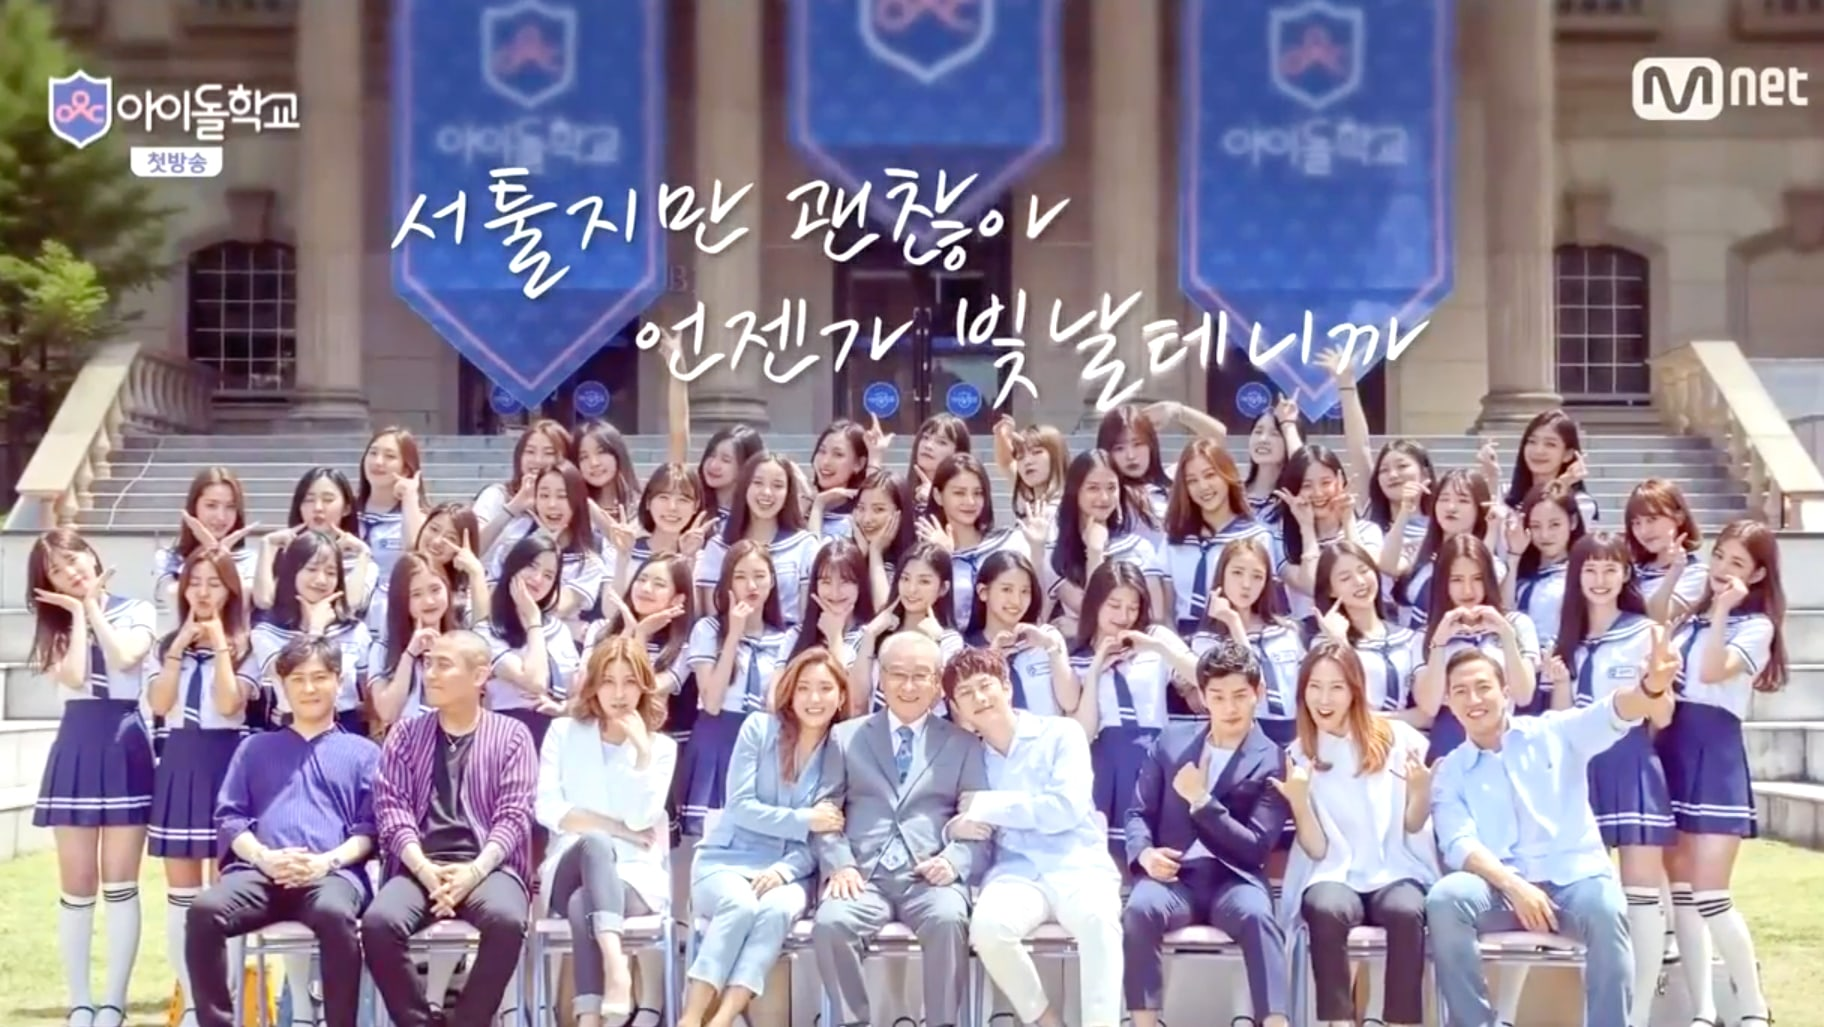 """Mnet's """"Idol School"""" Surpasses Expectations And PD Talks About Absence Of Devil's Editing In Program"""